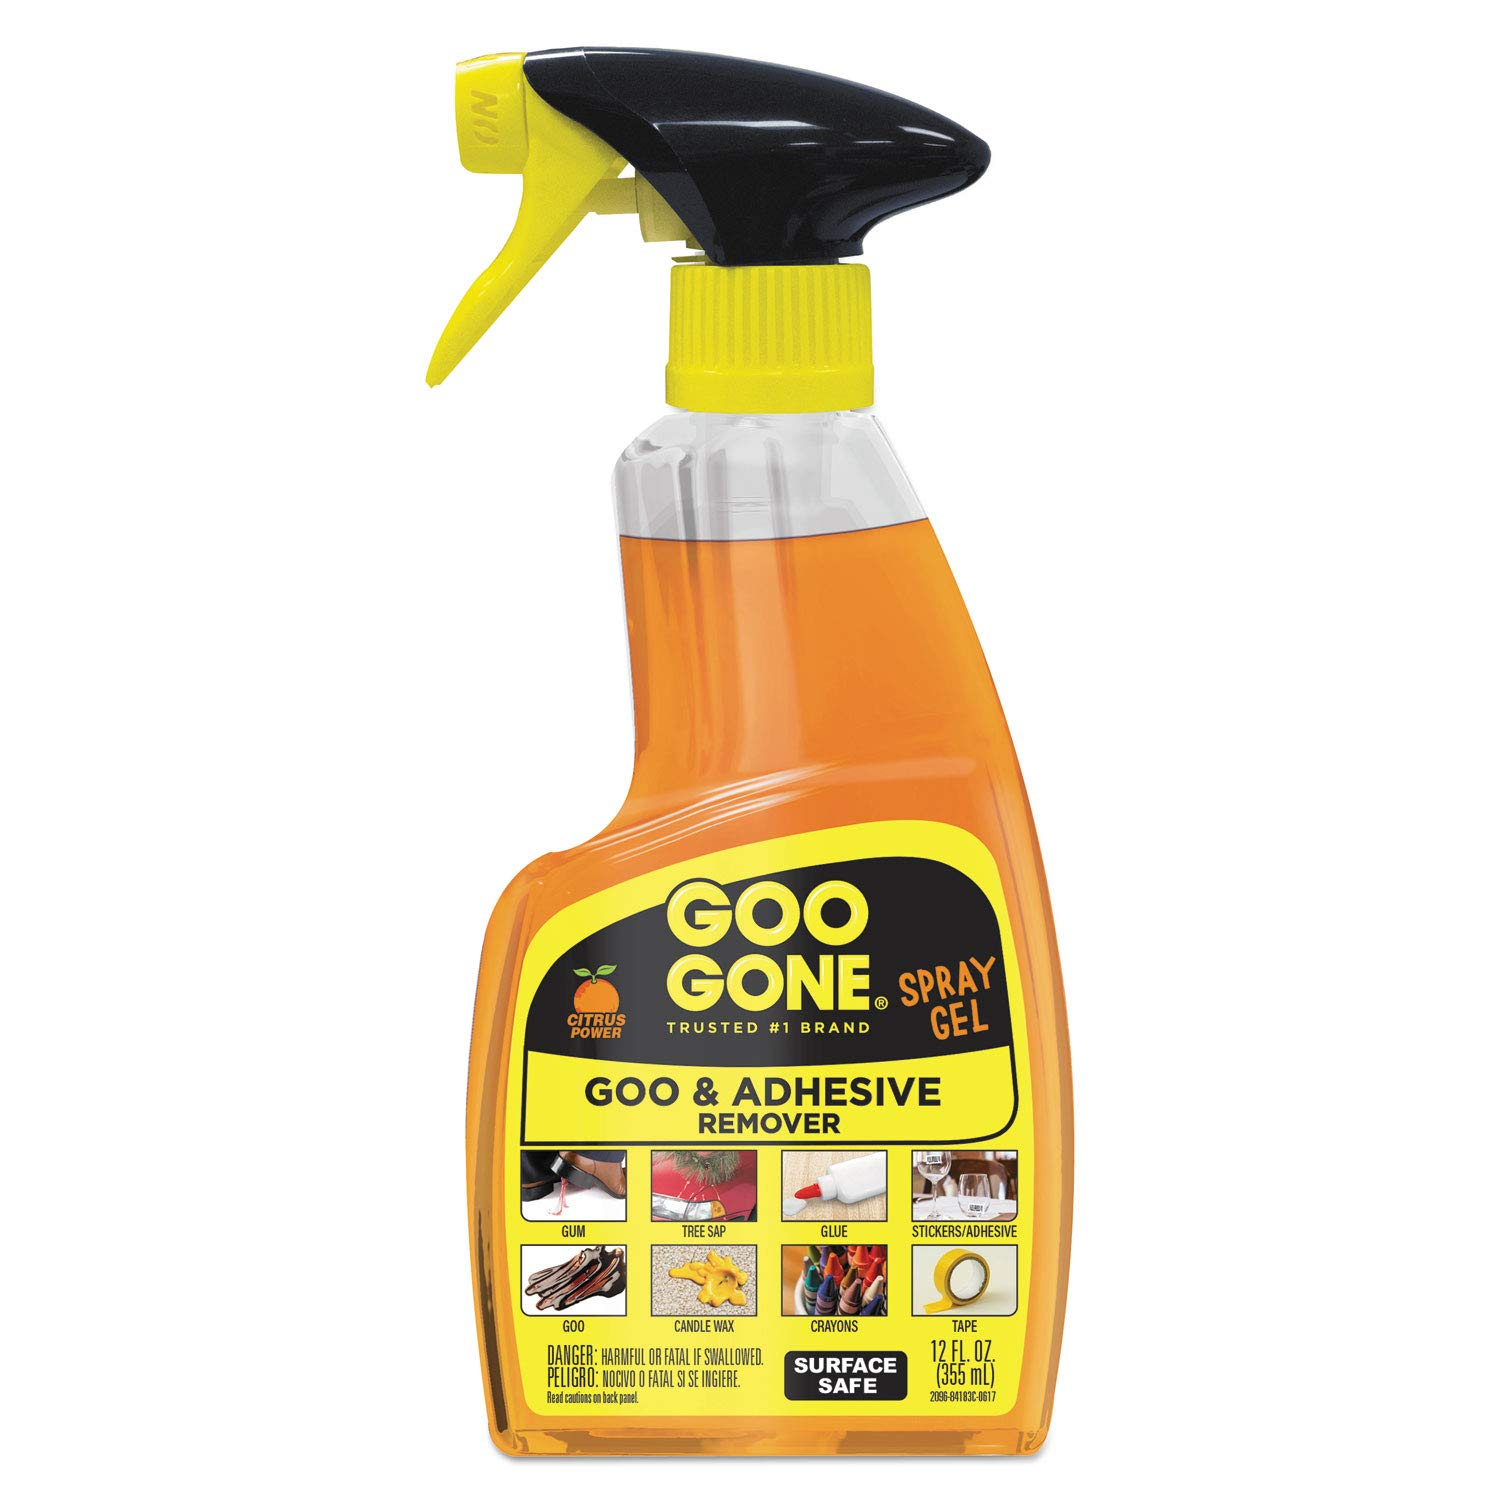 OFFer WMN2096 - Goo Spray Gone Gel Don't miss the campaign